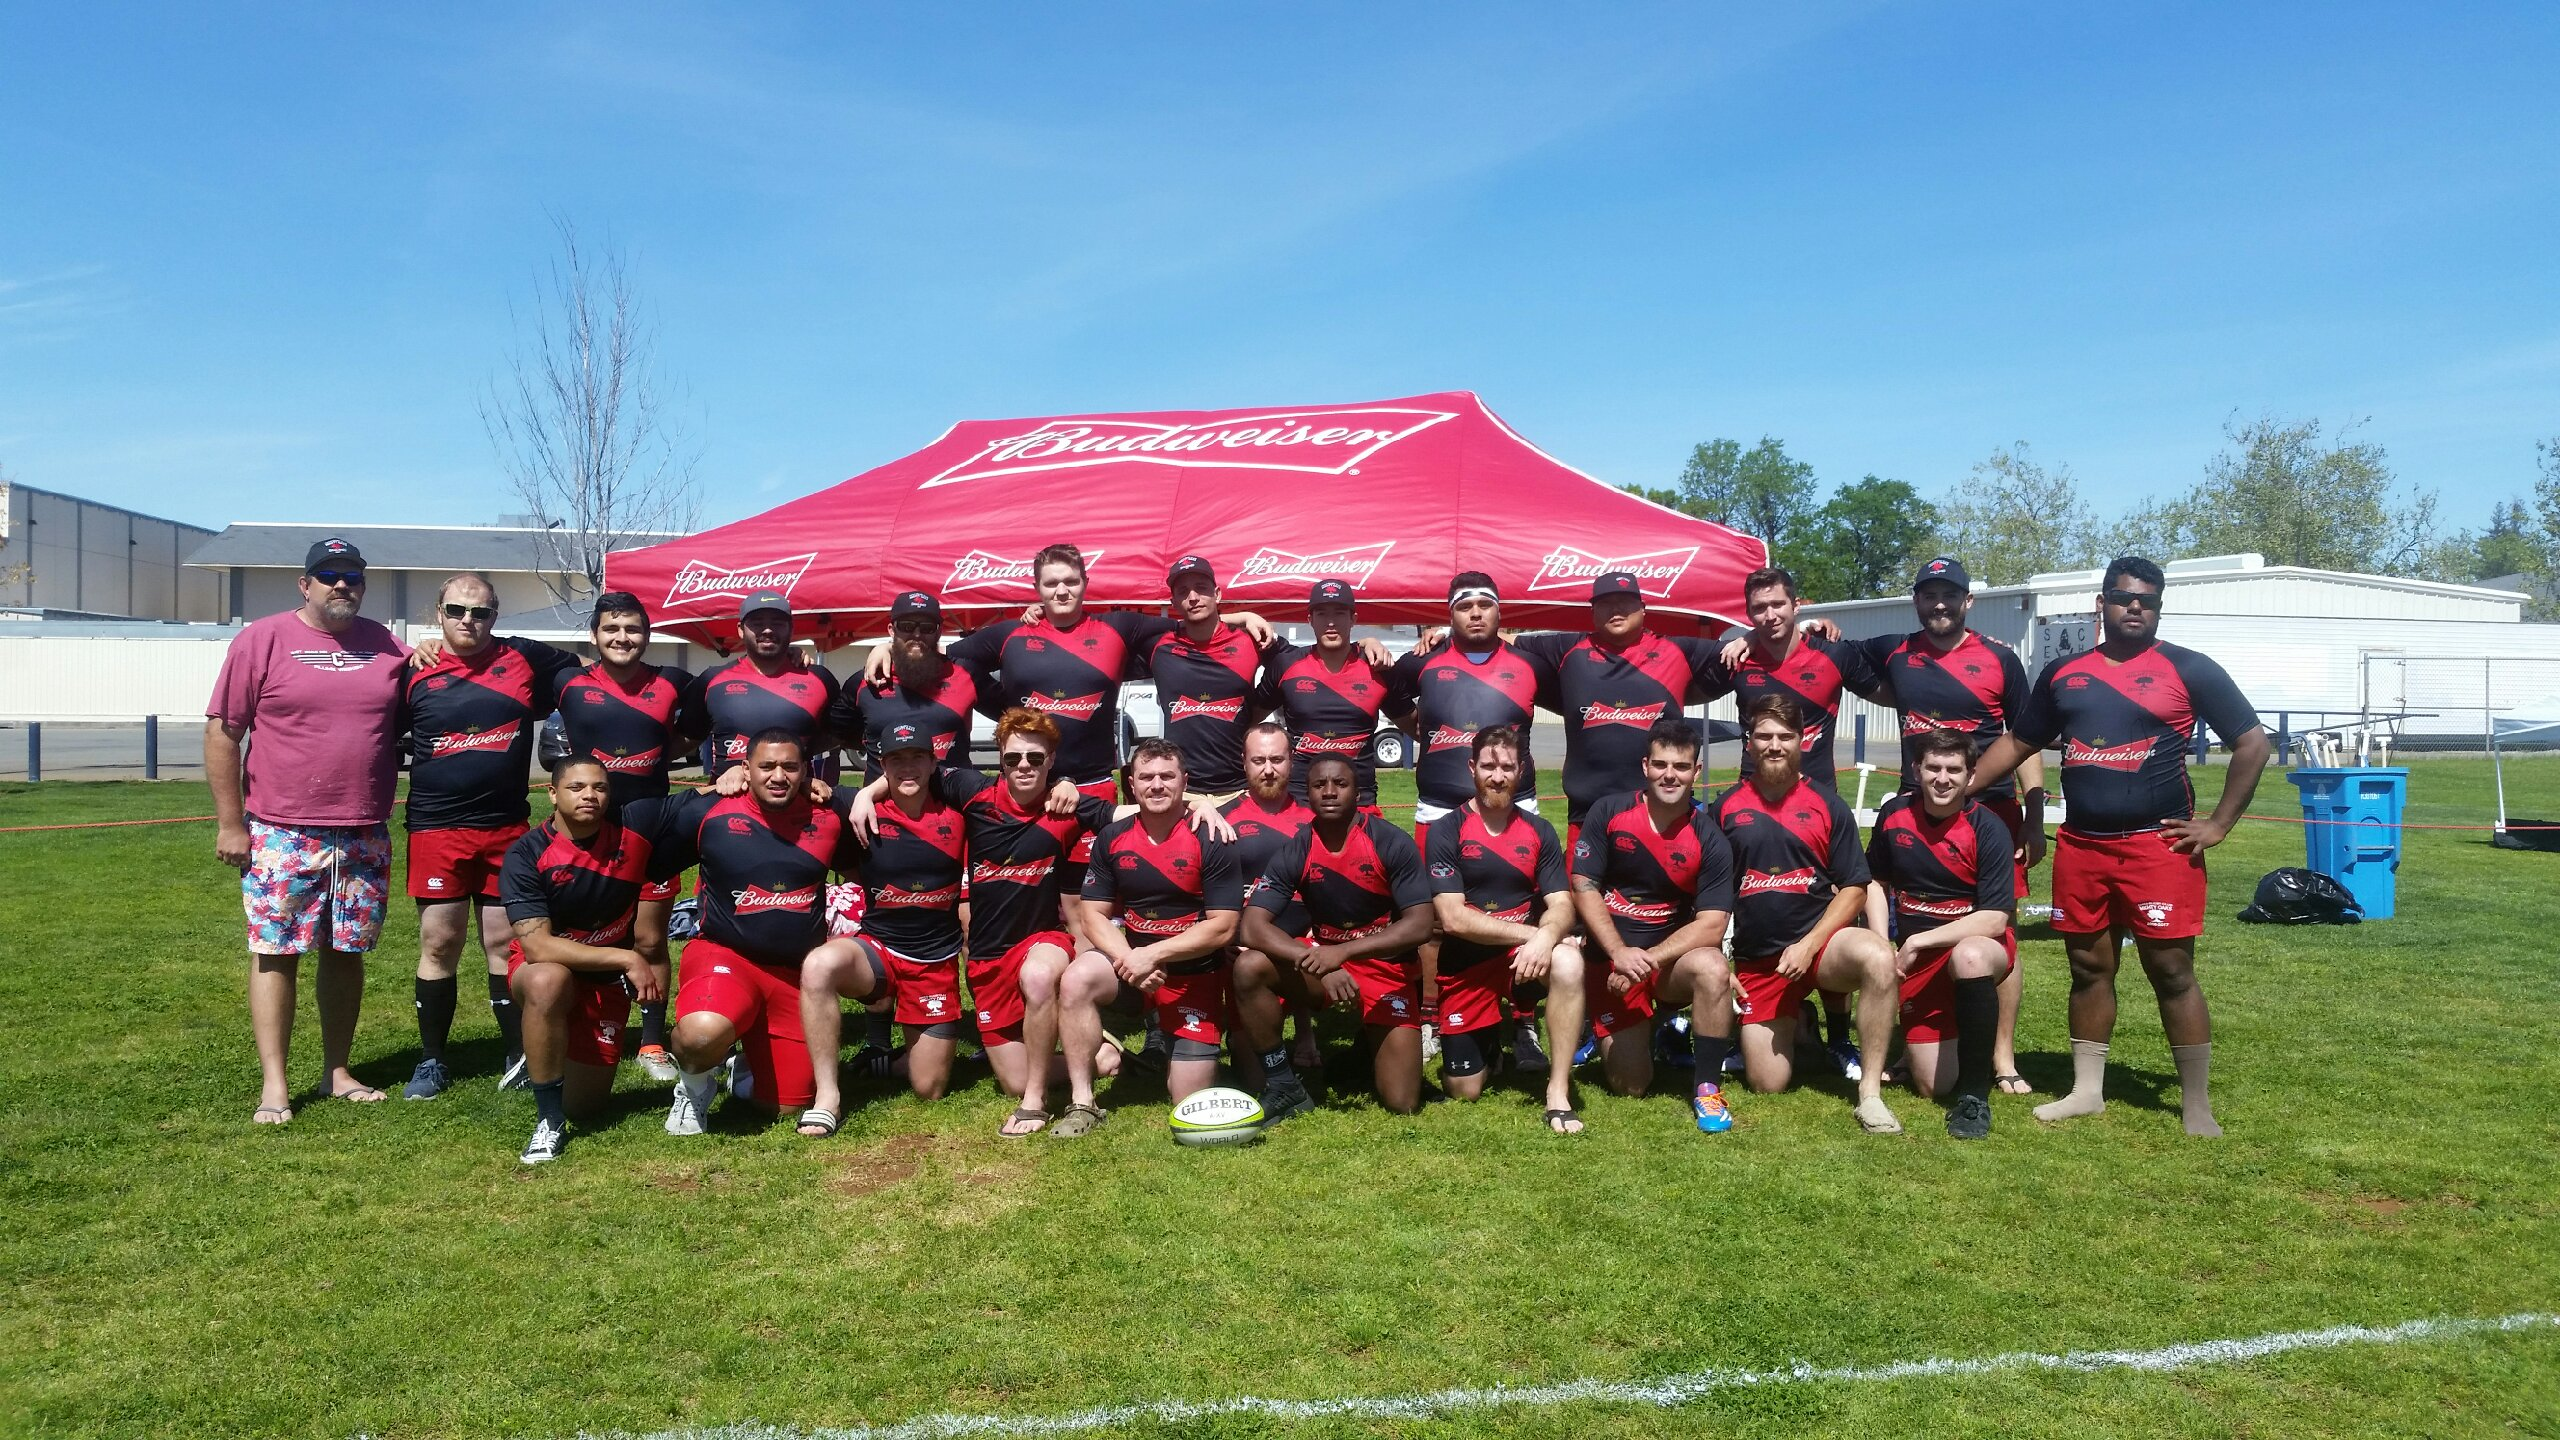 Chico Men's Rugby team photo 2017